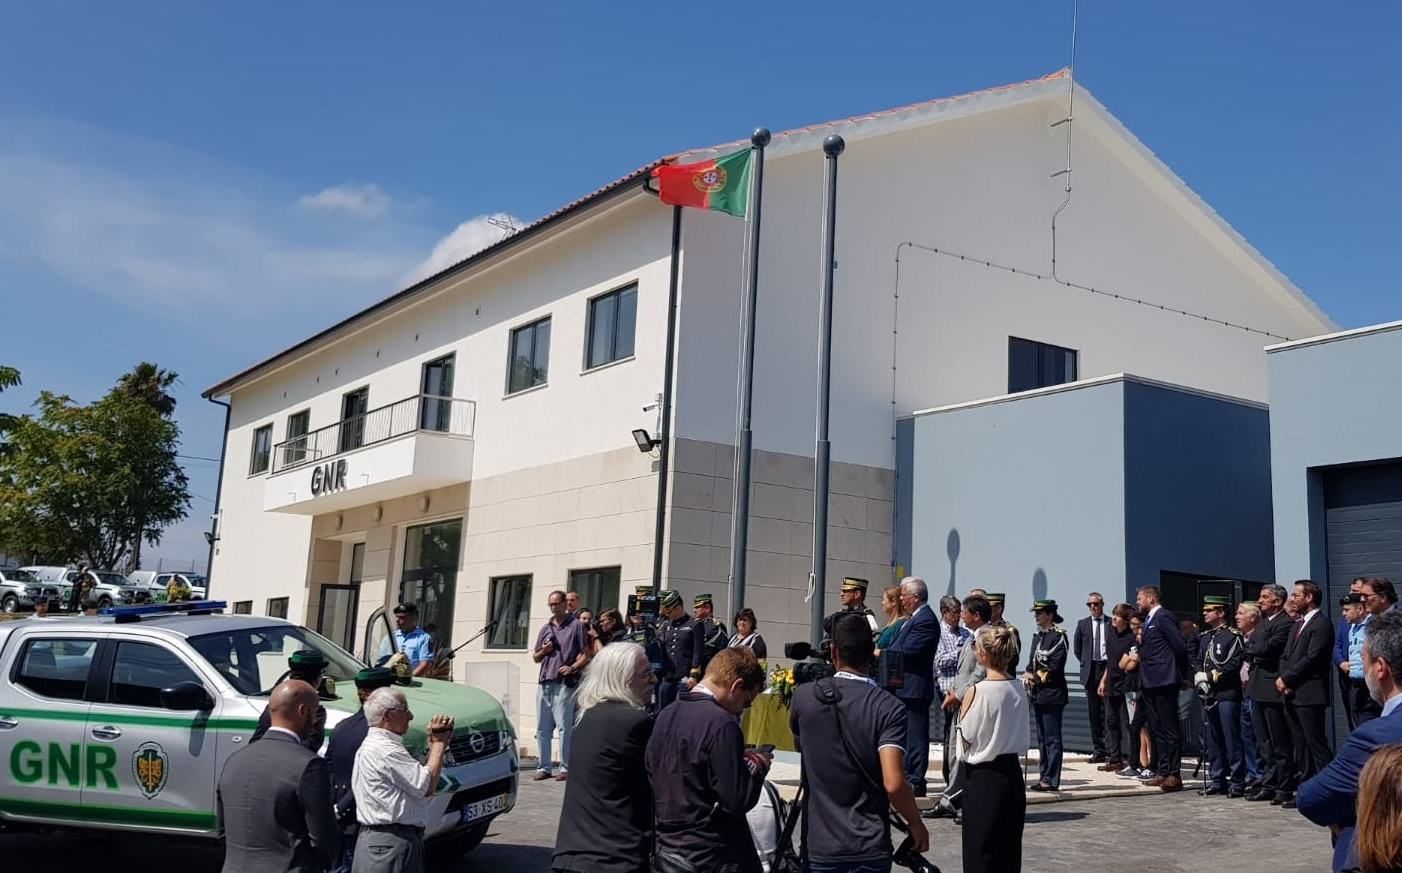 Inauguration of the new headquarters of GNR de Alcanena